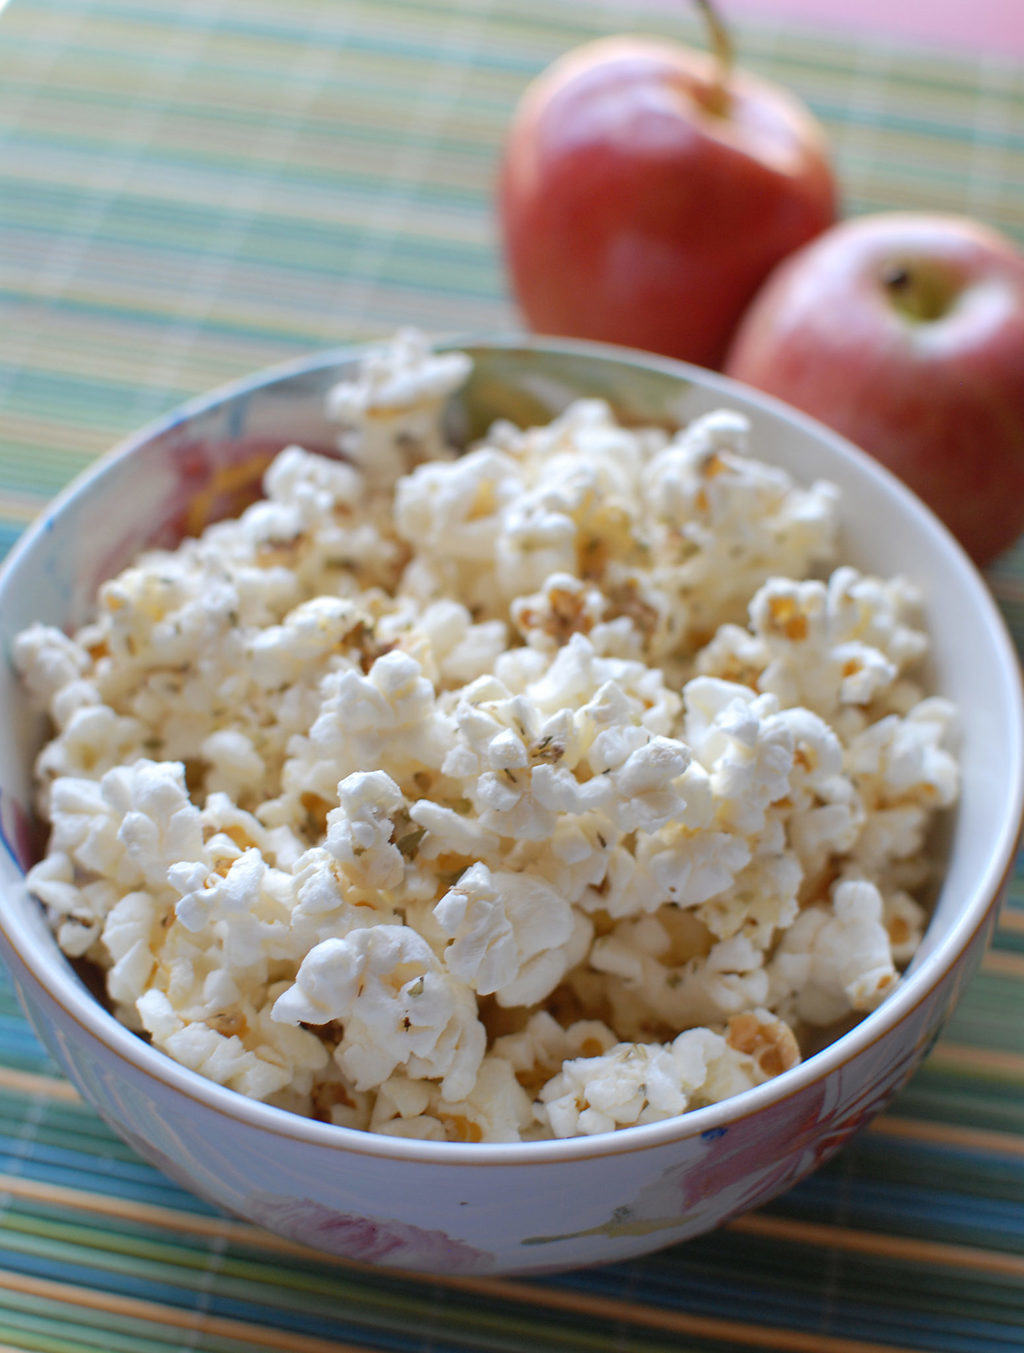 Parmesan Popcorn From EatinontheCheap.com